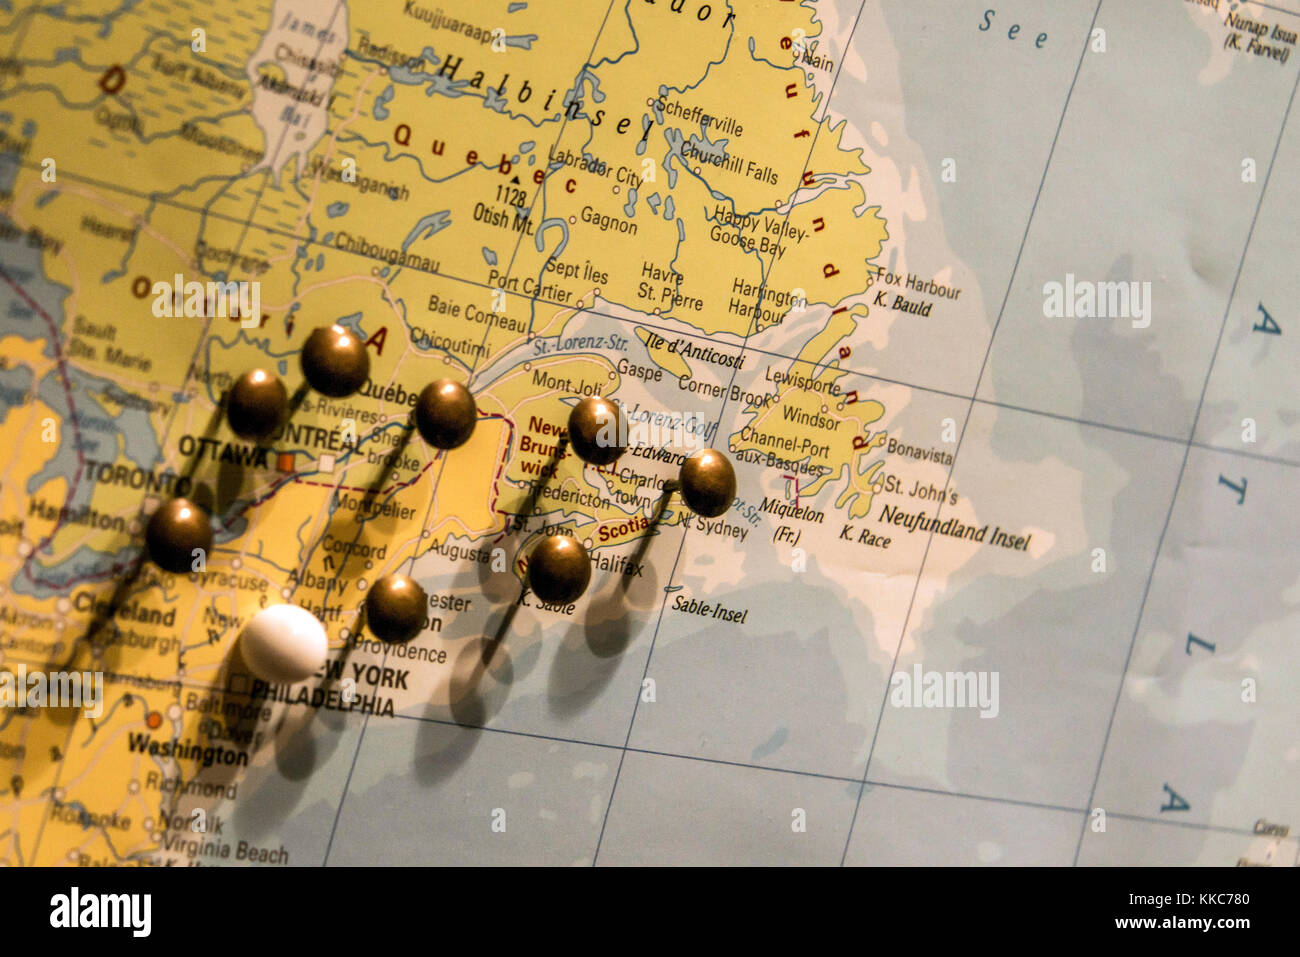 Travel map push pins stock photos travel map push pins stock picture of world map travel concept with many pushpins pins in east usa and canada gumiabroncs Image collections